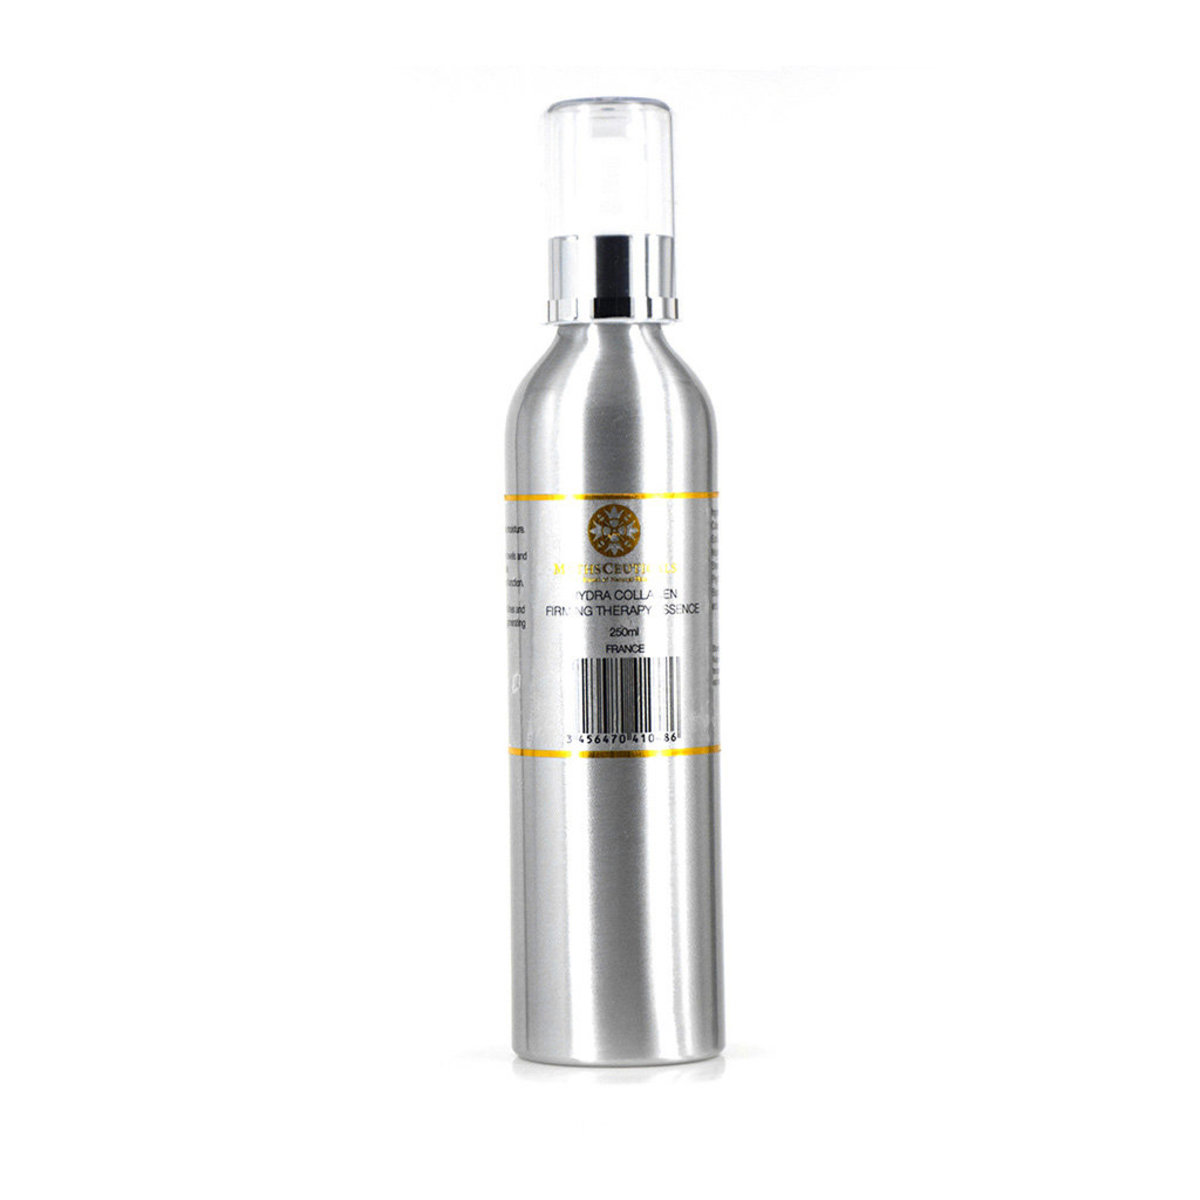 HYDRA COLLAGEN FIRMING THERAPY ESSENCE 250ml